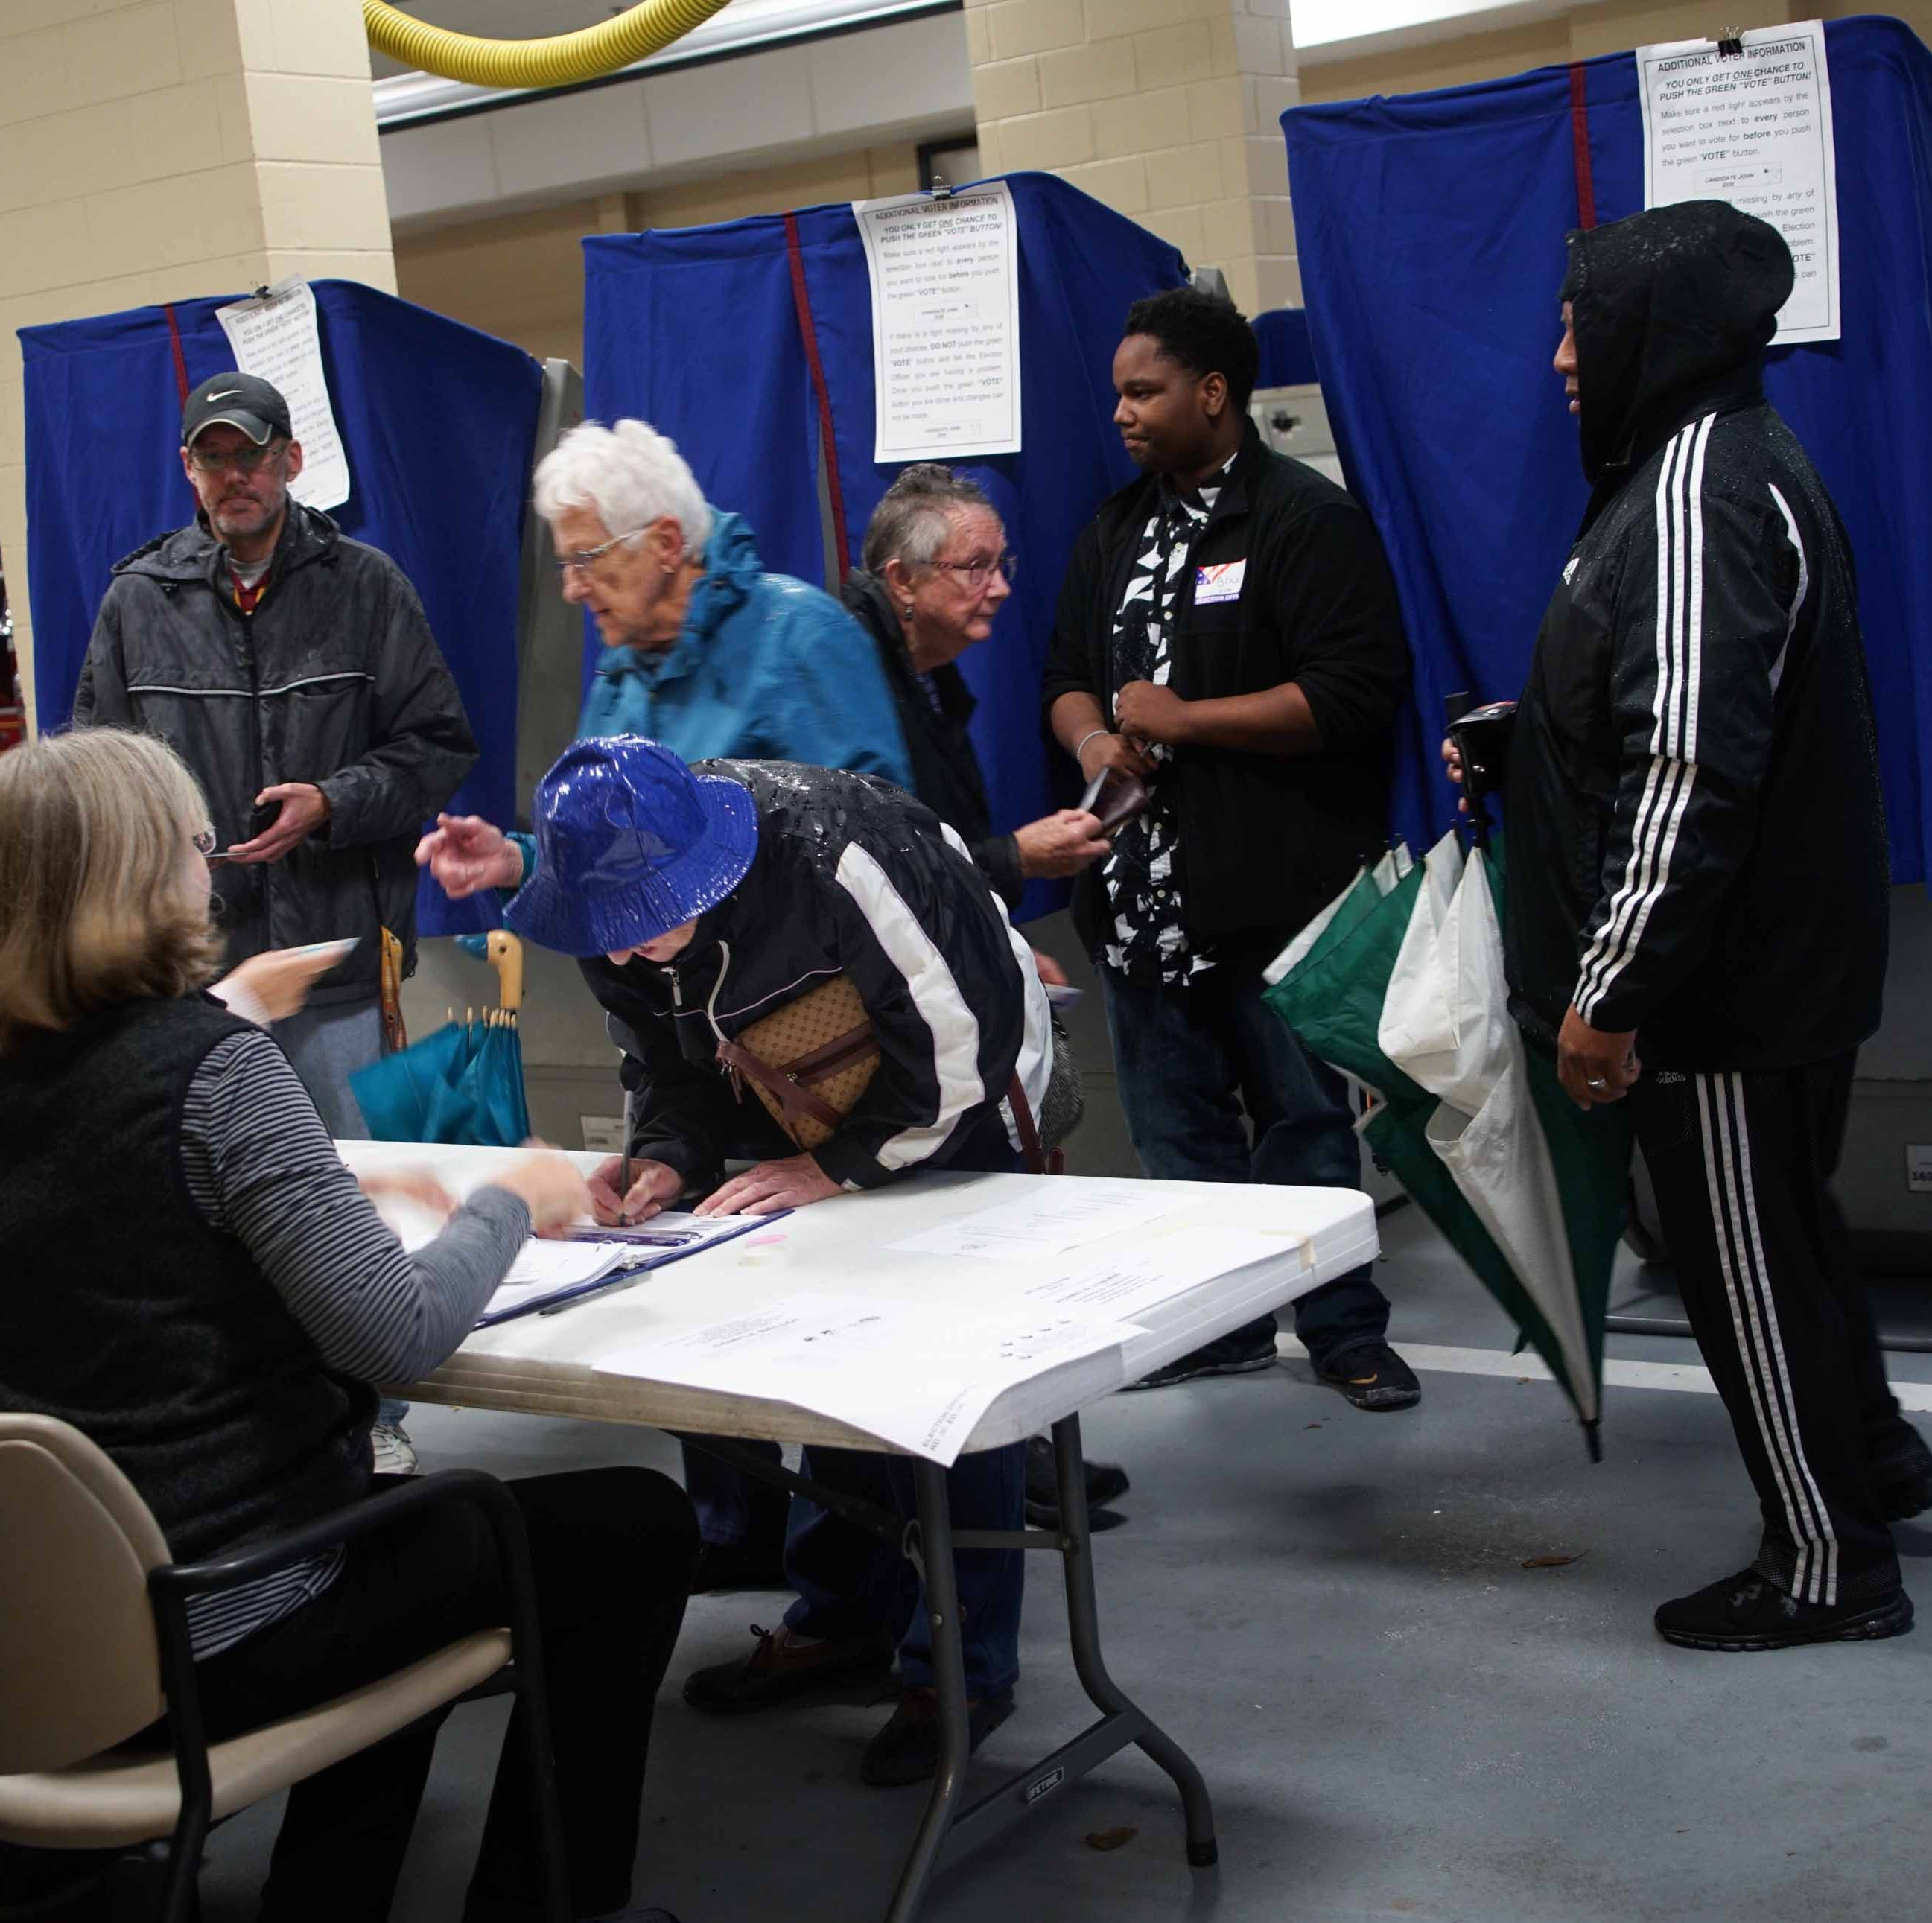 Delaware election results: How the different counties voted on statewide races